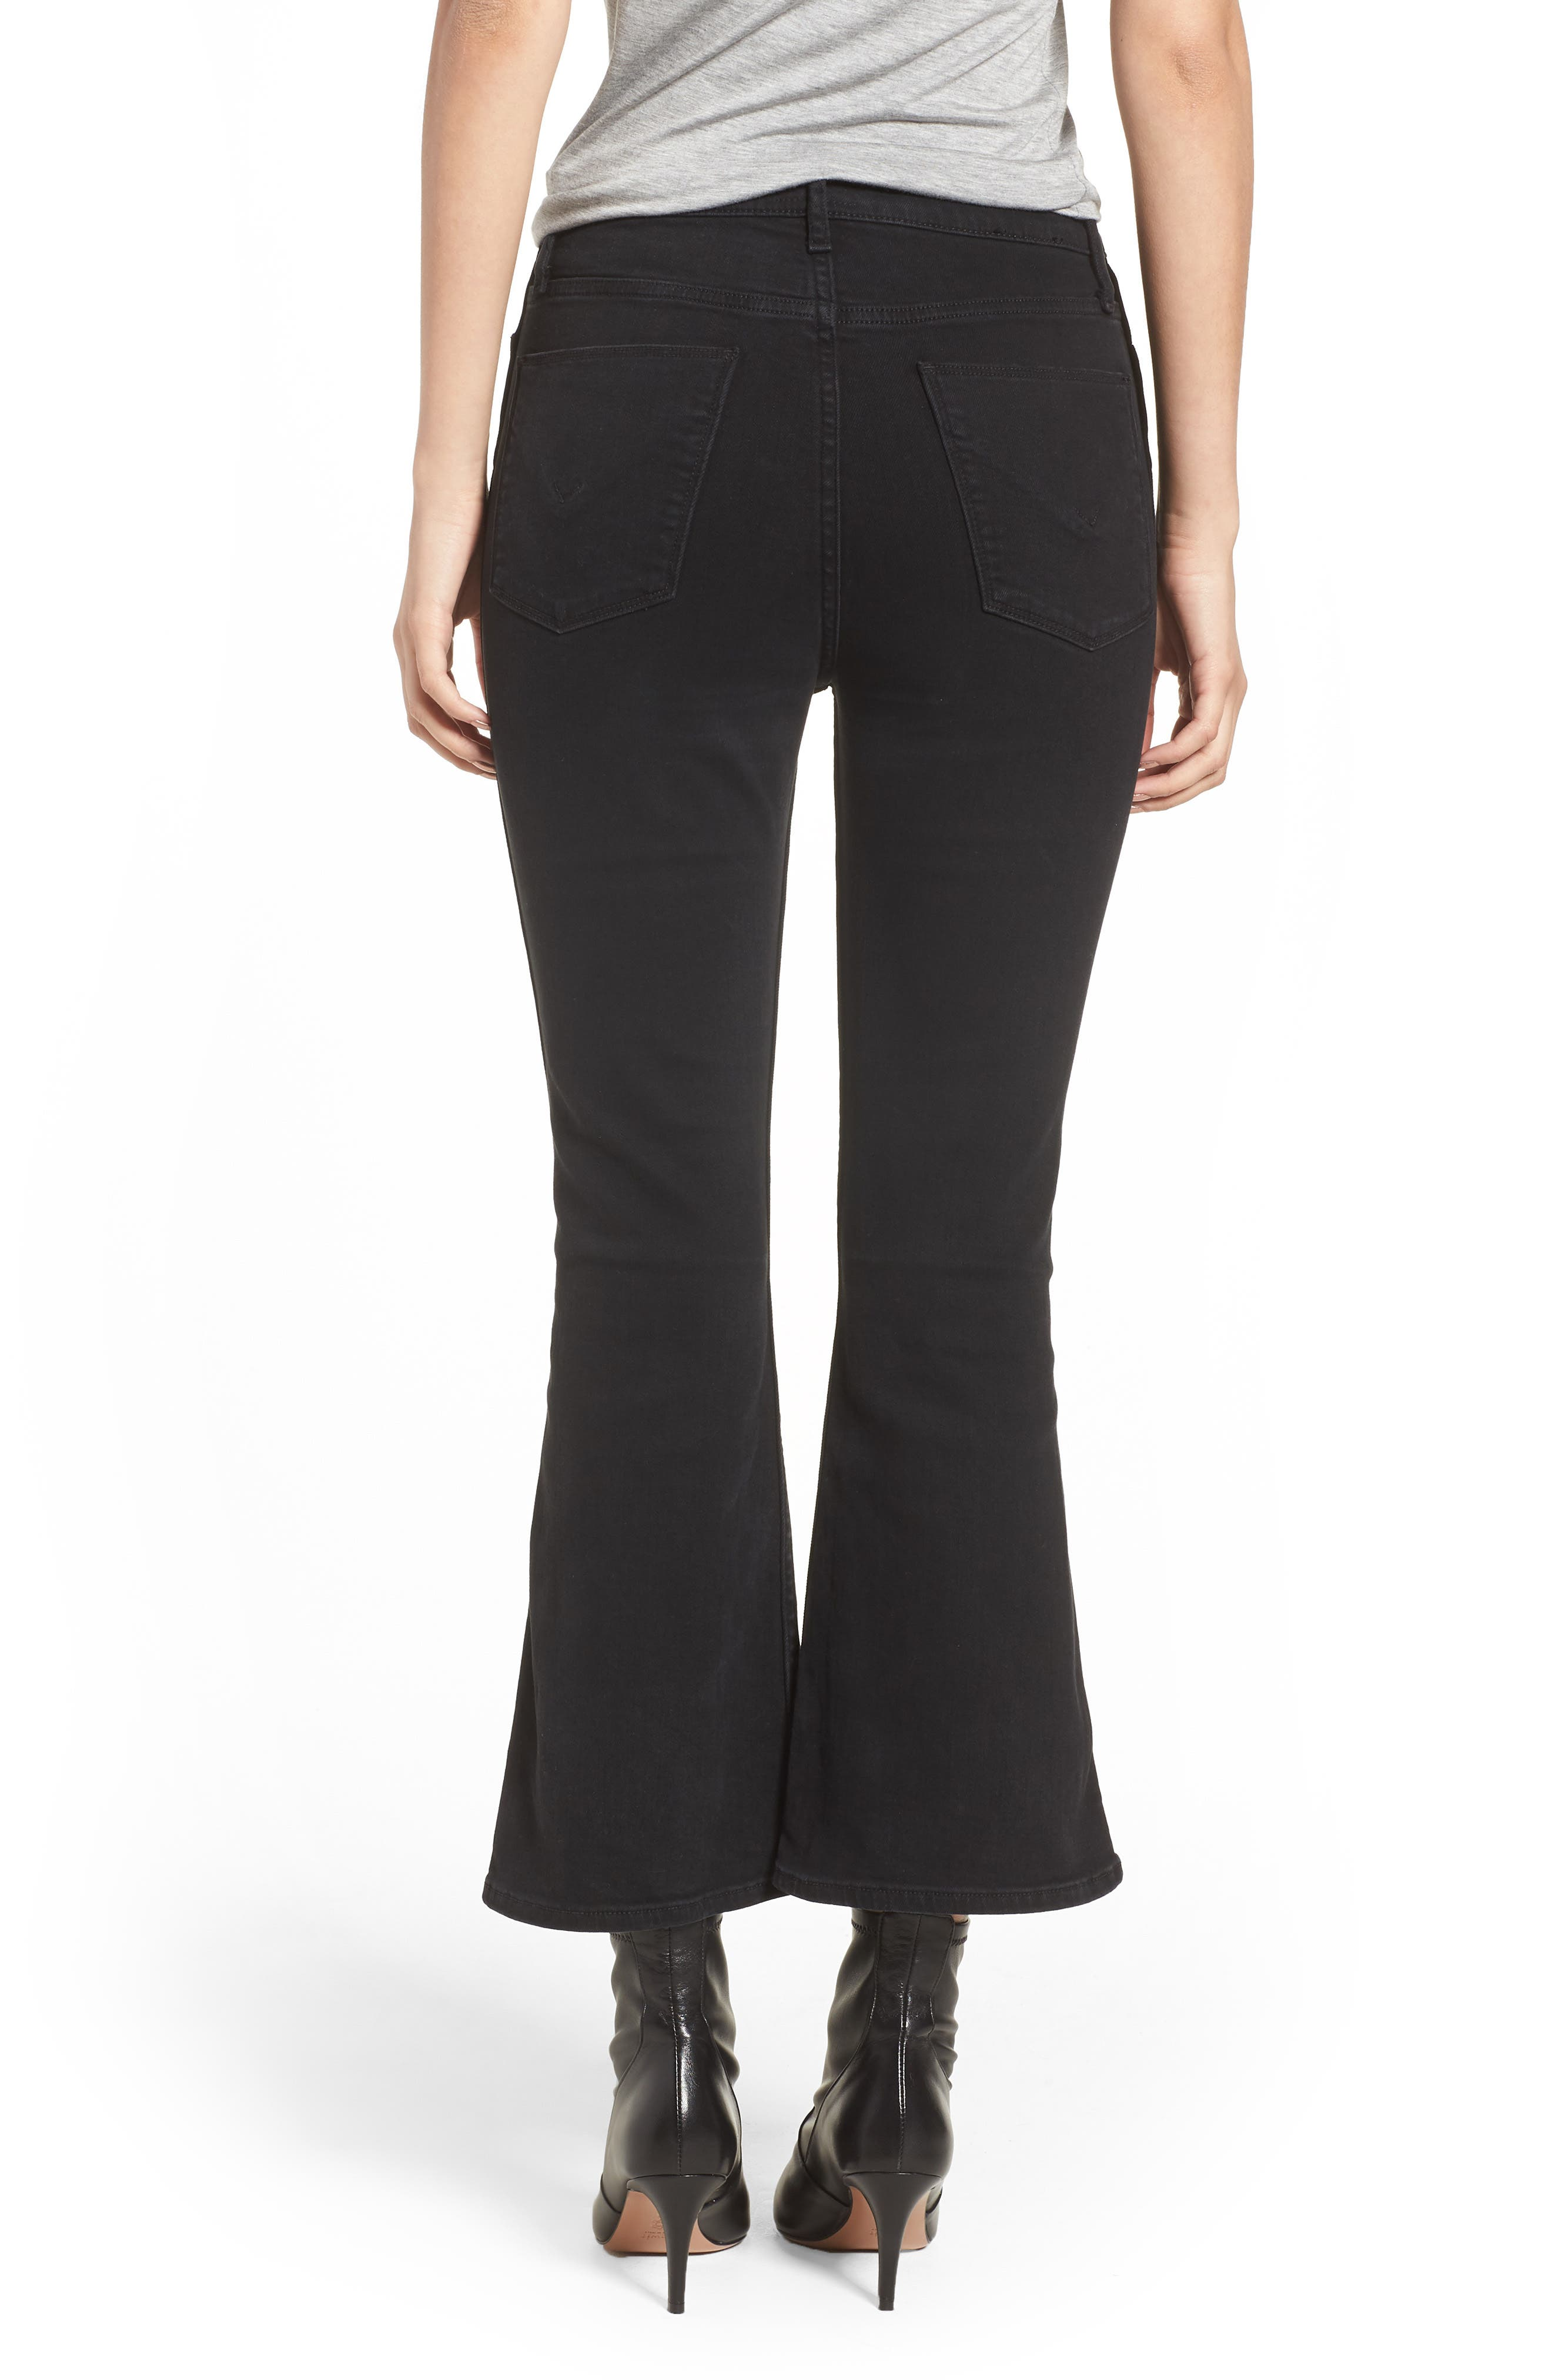 Holly High Waist Crop Flare Jeans,                             Alternate thumbnail 2, color,                             001